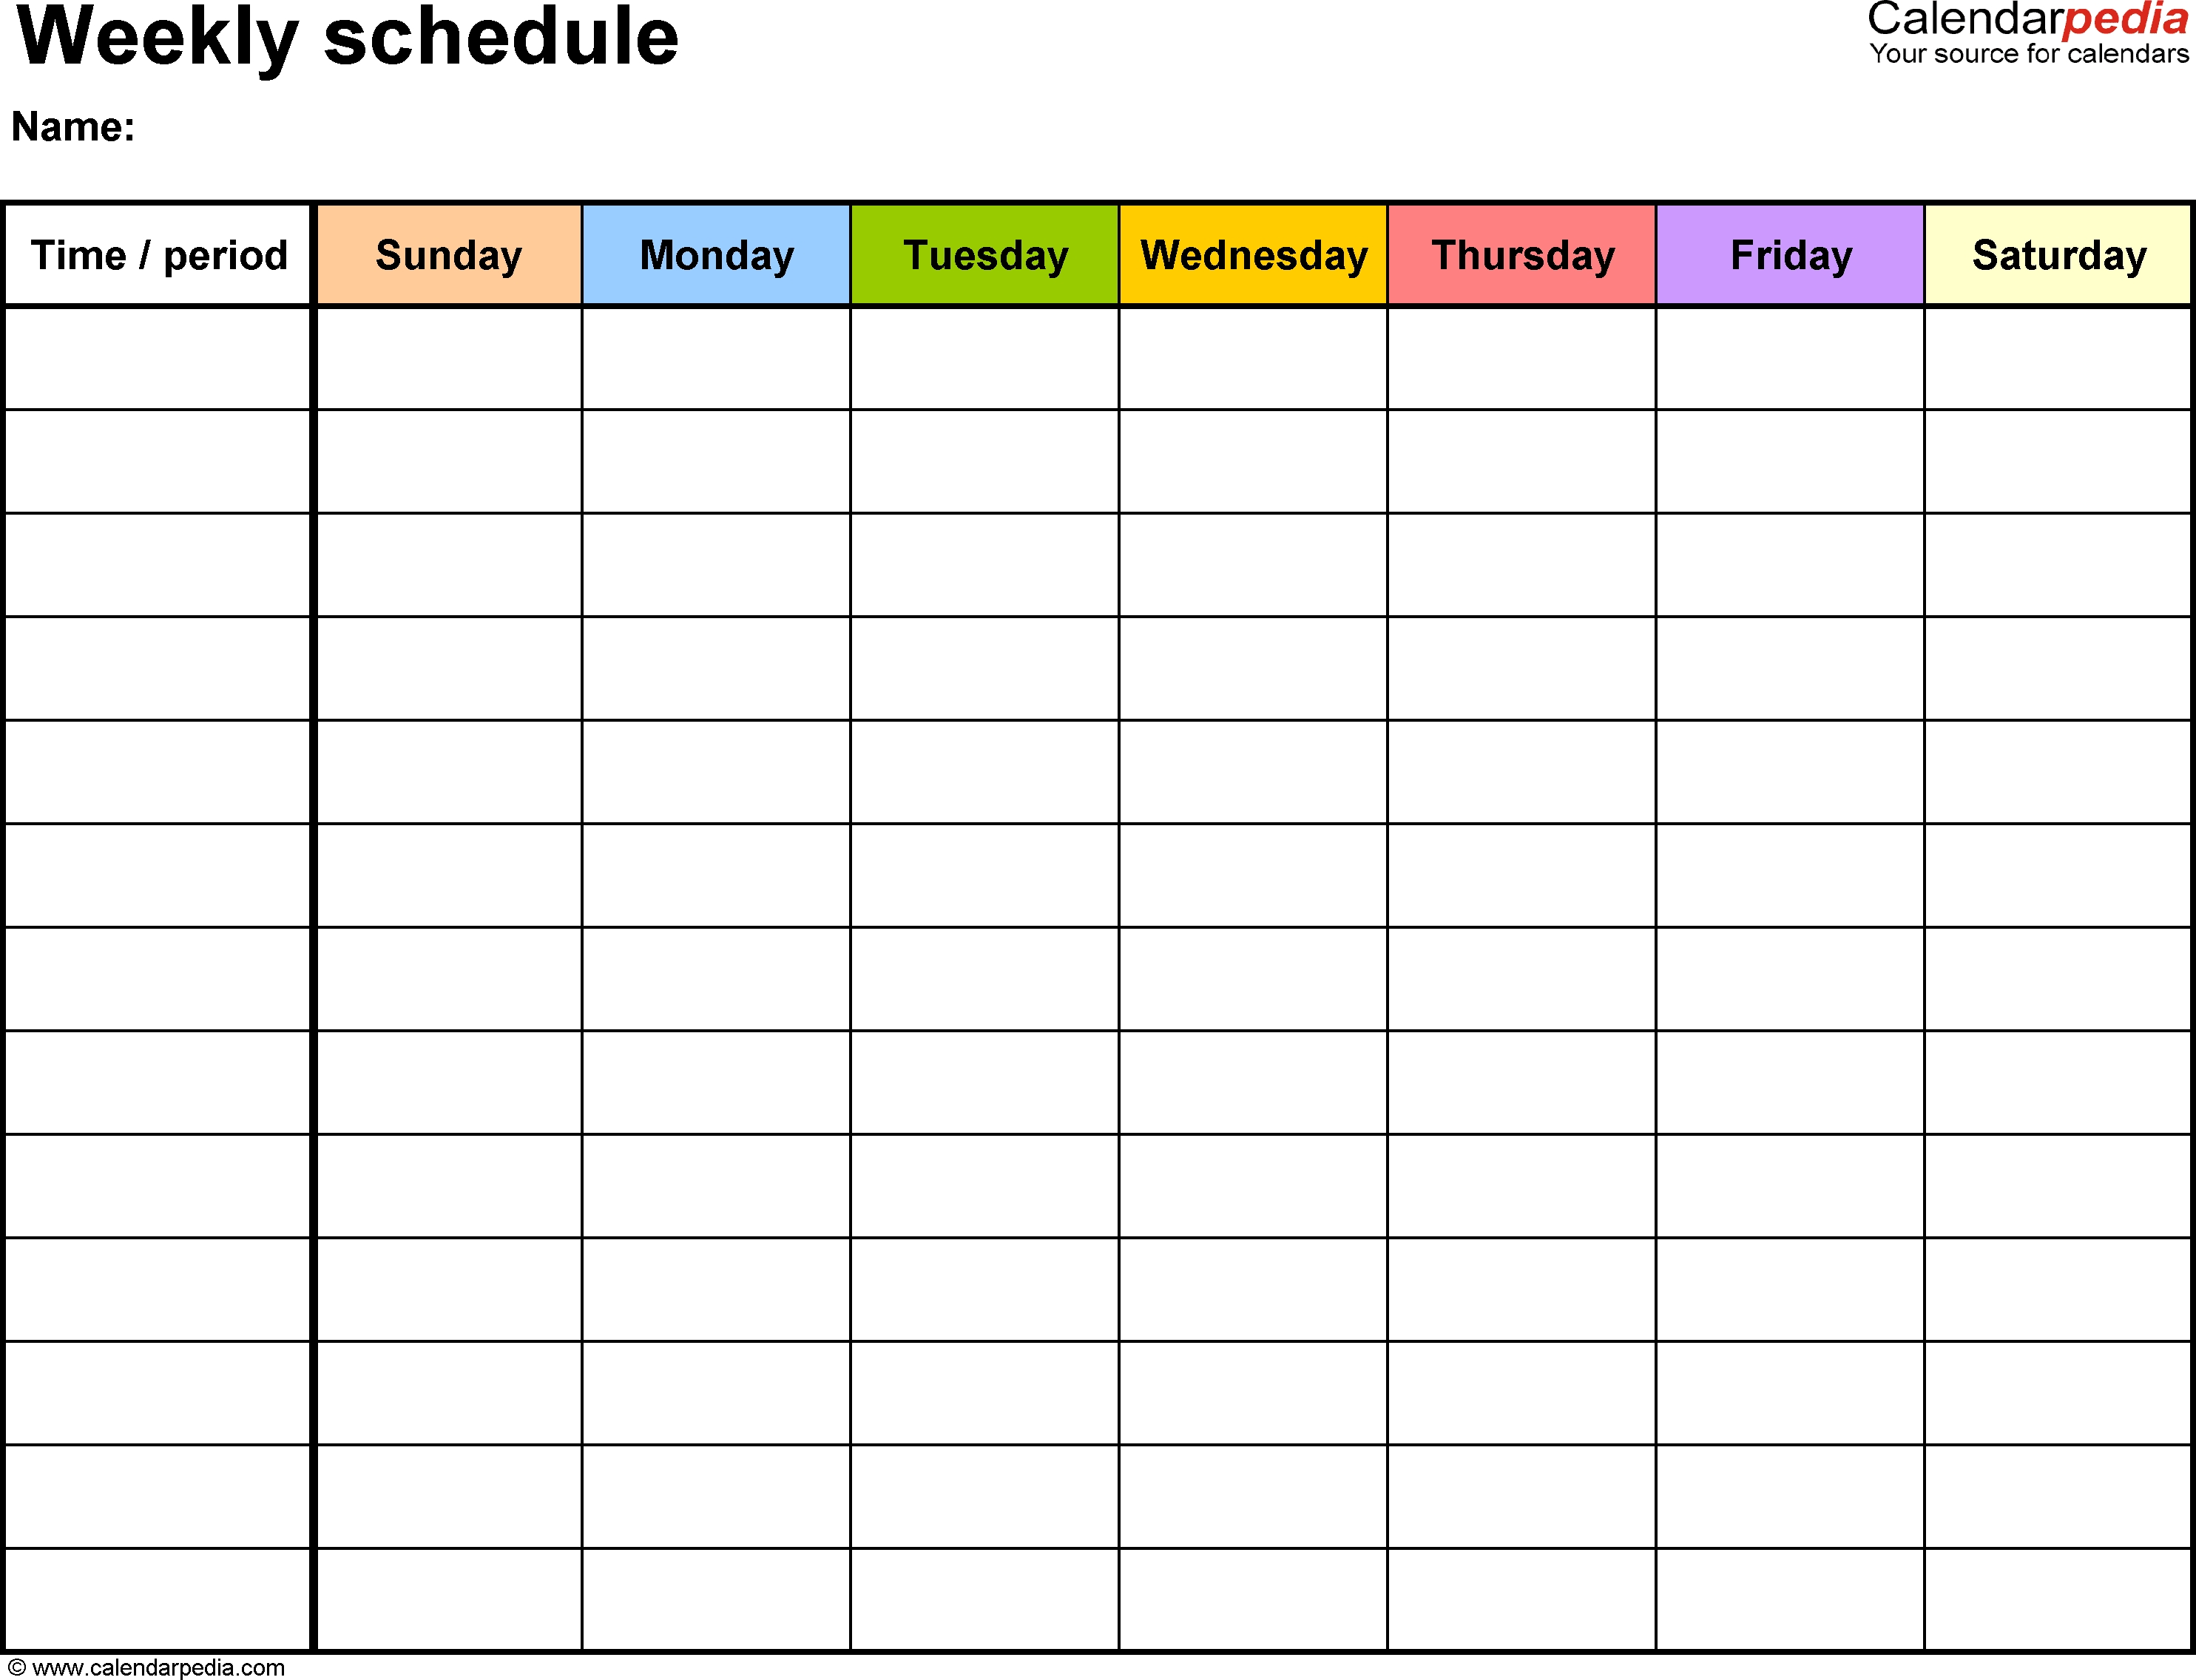 Free Weekly Schedule Templates For Word - 18 Templates  Printable Appointment Calendars Monday Through Friday